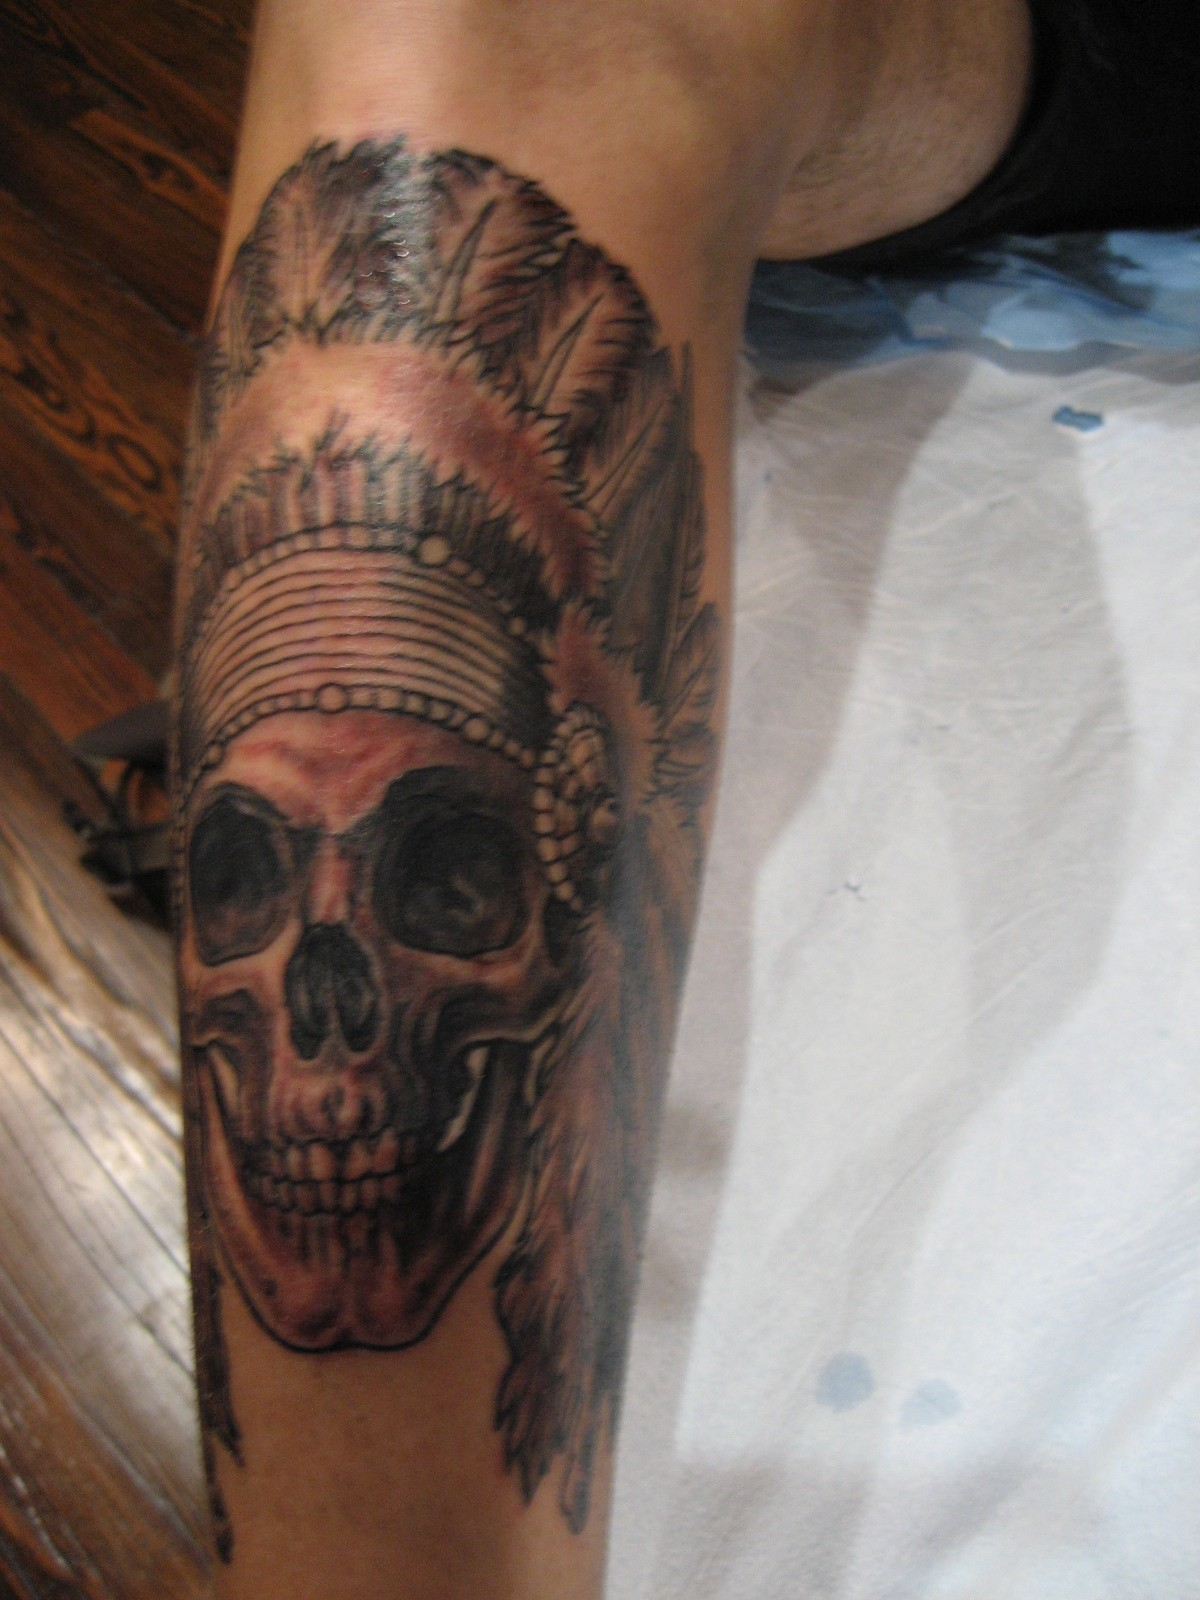 Indian Chief Skull Tattoo Meaning Information Keywords And Pictures